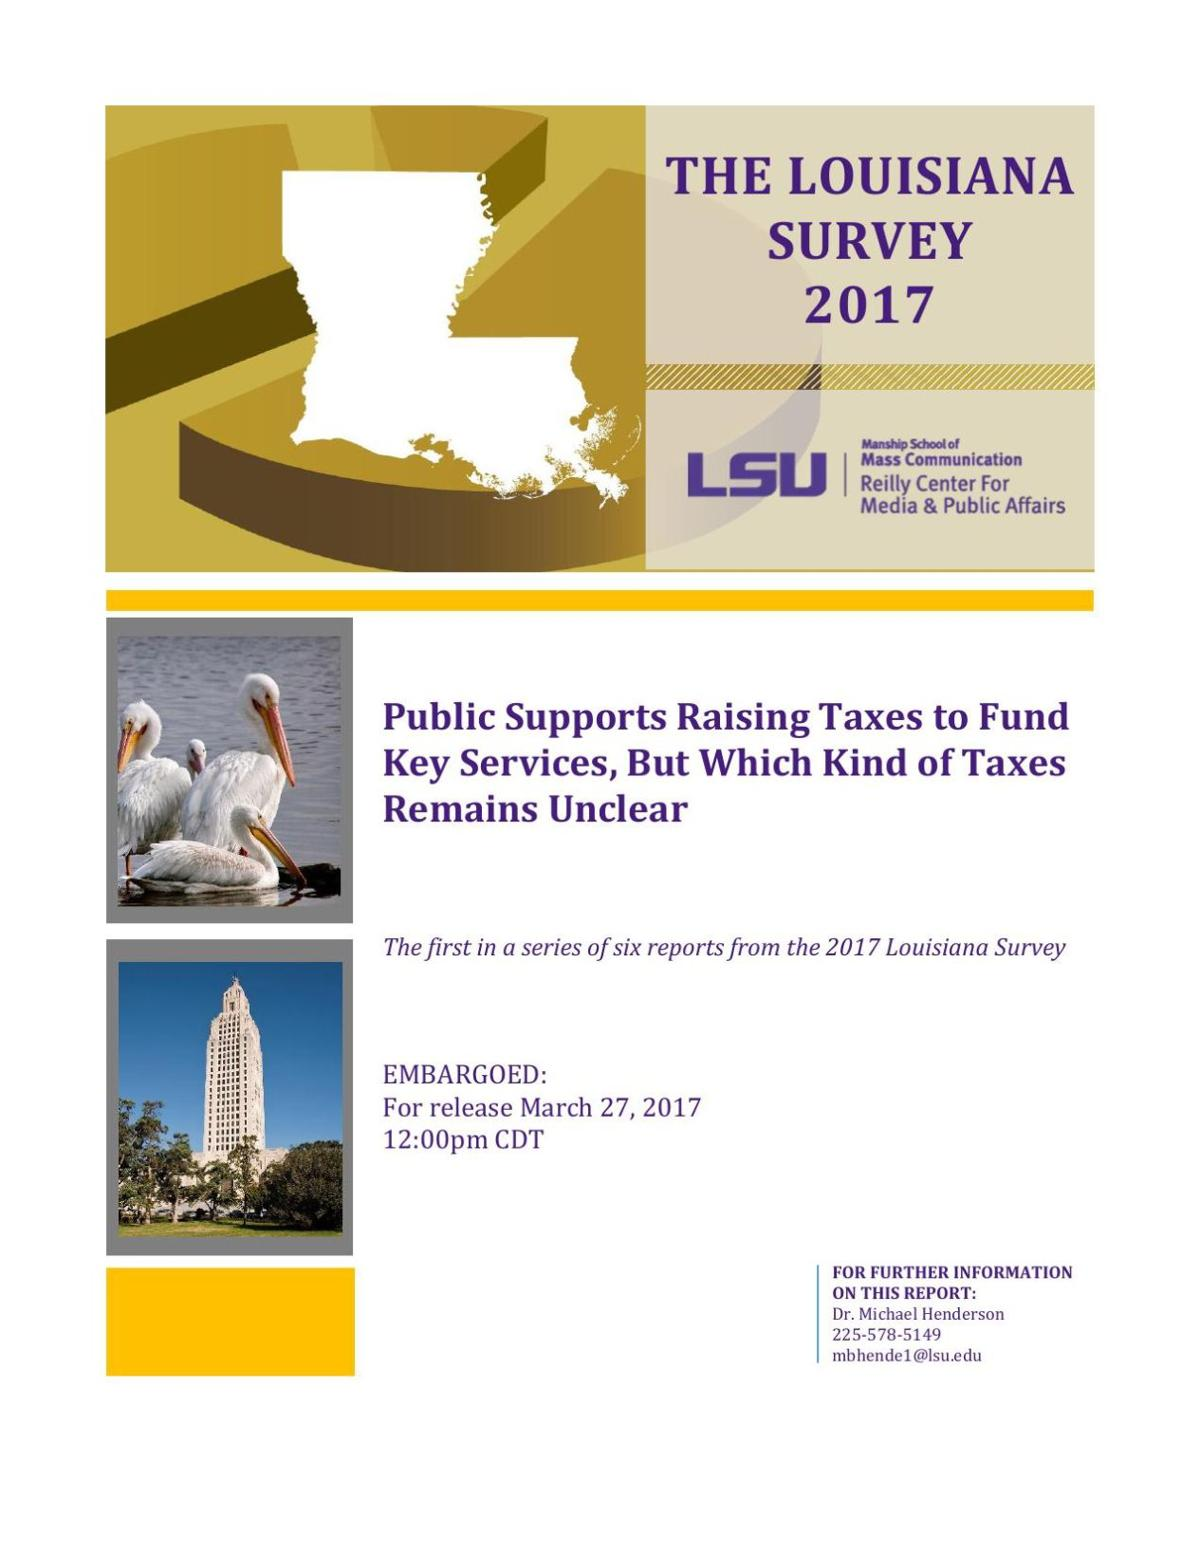 PDF: Louisiana Survey 2017, Part 1